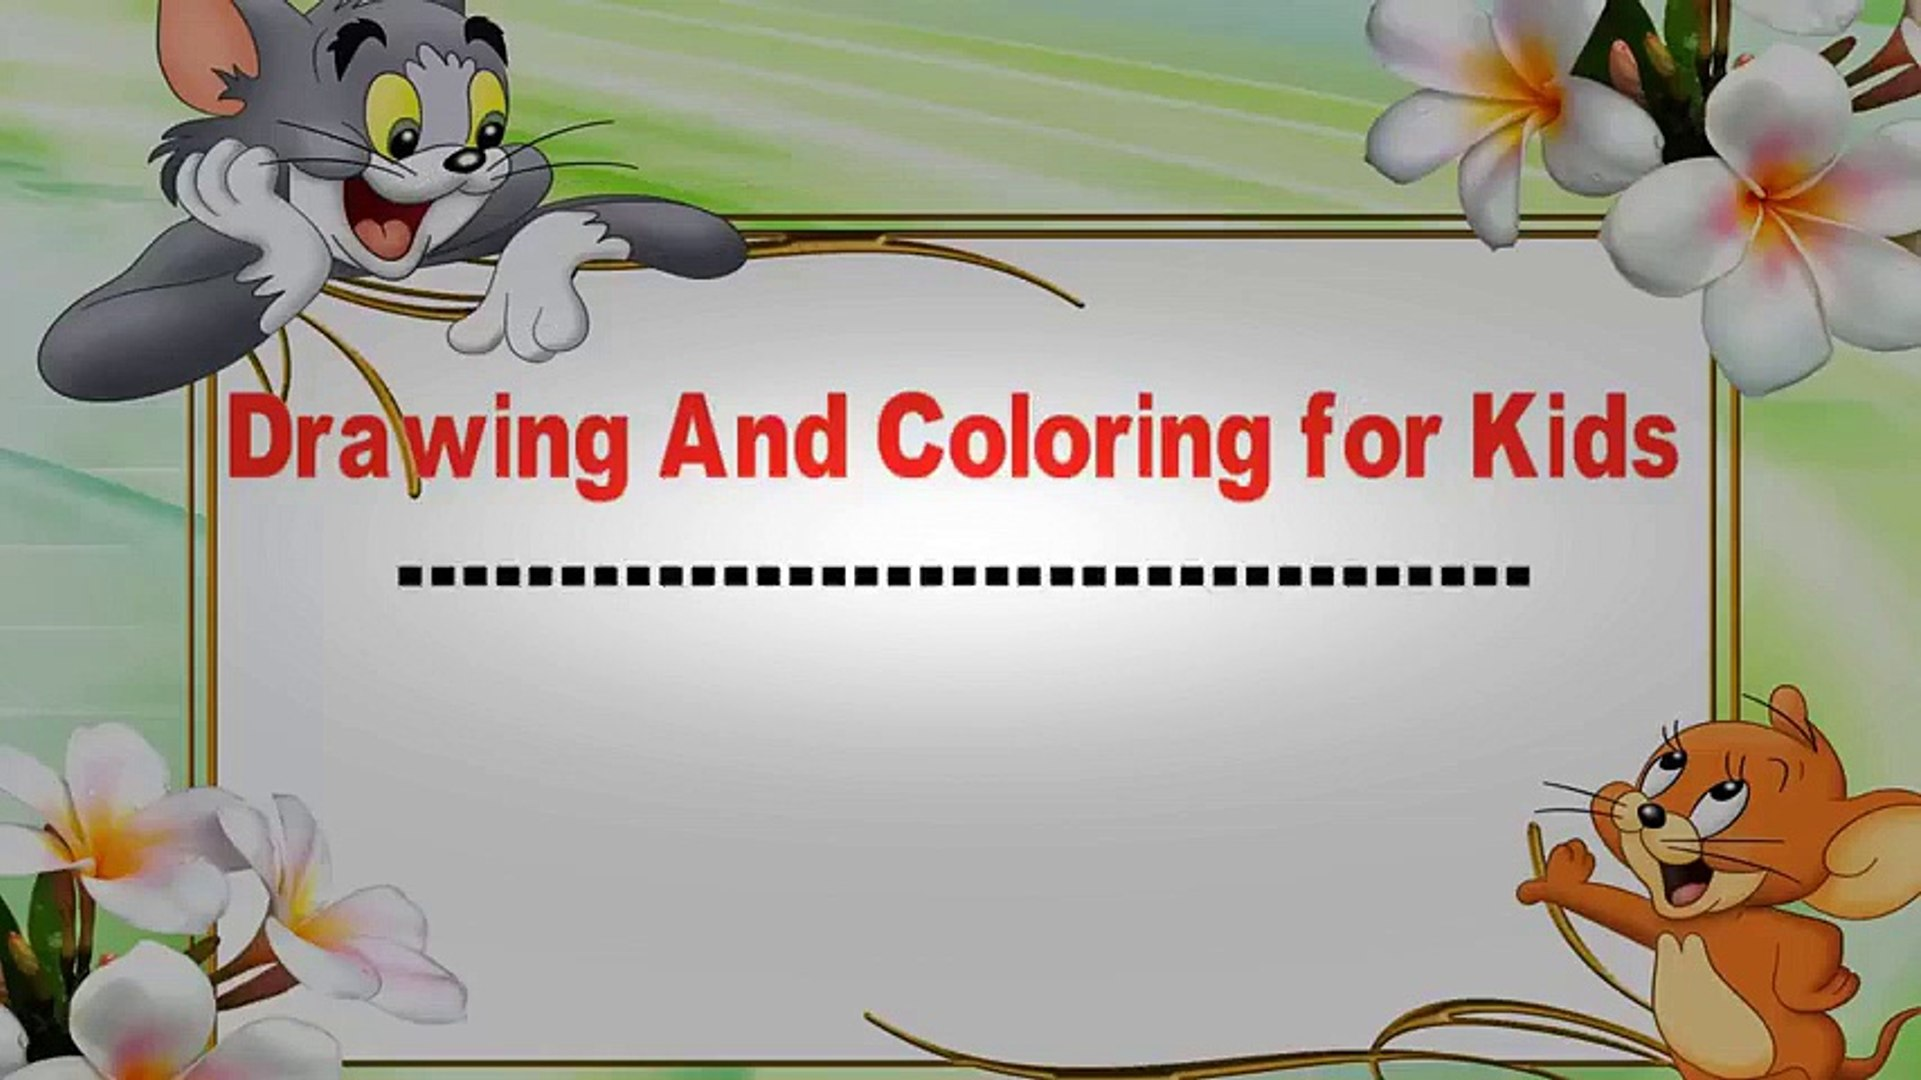 How To Draw Cute Birds Kids Learning Color With Animals Coloring Pages Videos For Children Educational Child Channel Video Dailymotion